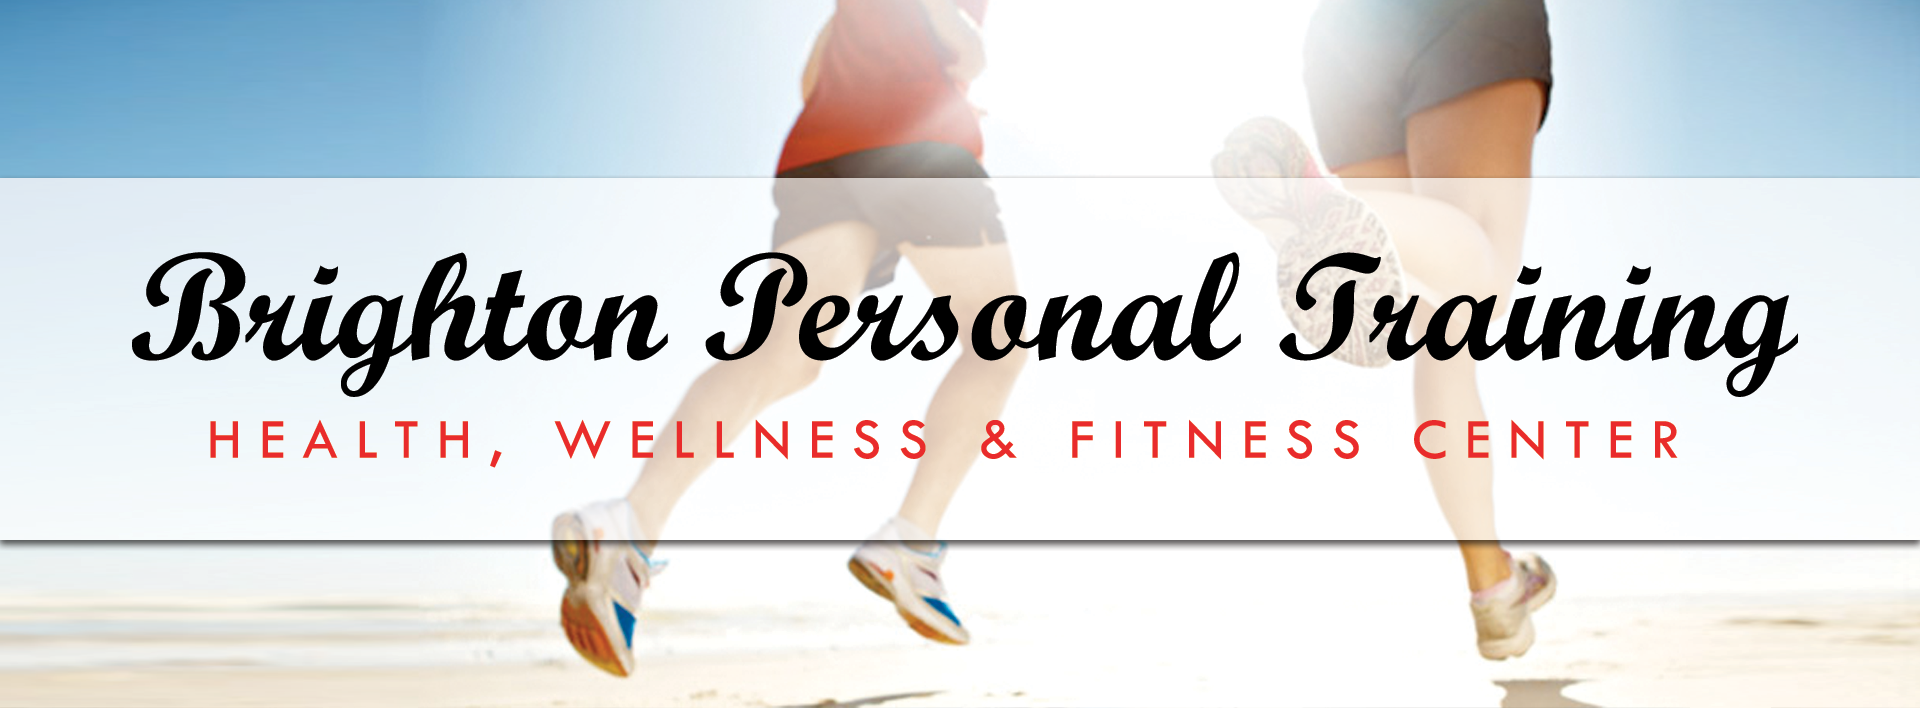 Brighton Personal Training – Health and Fitness Center